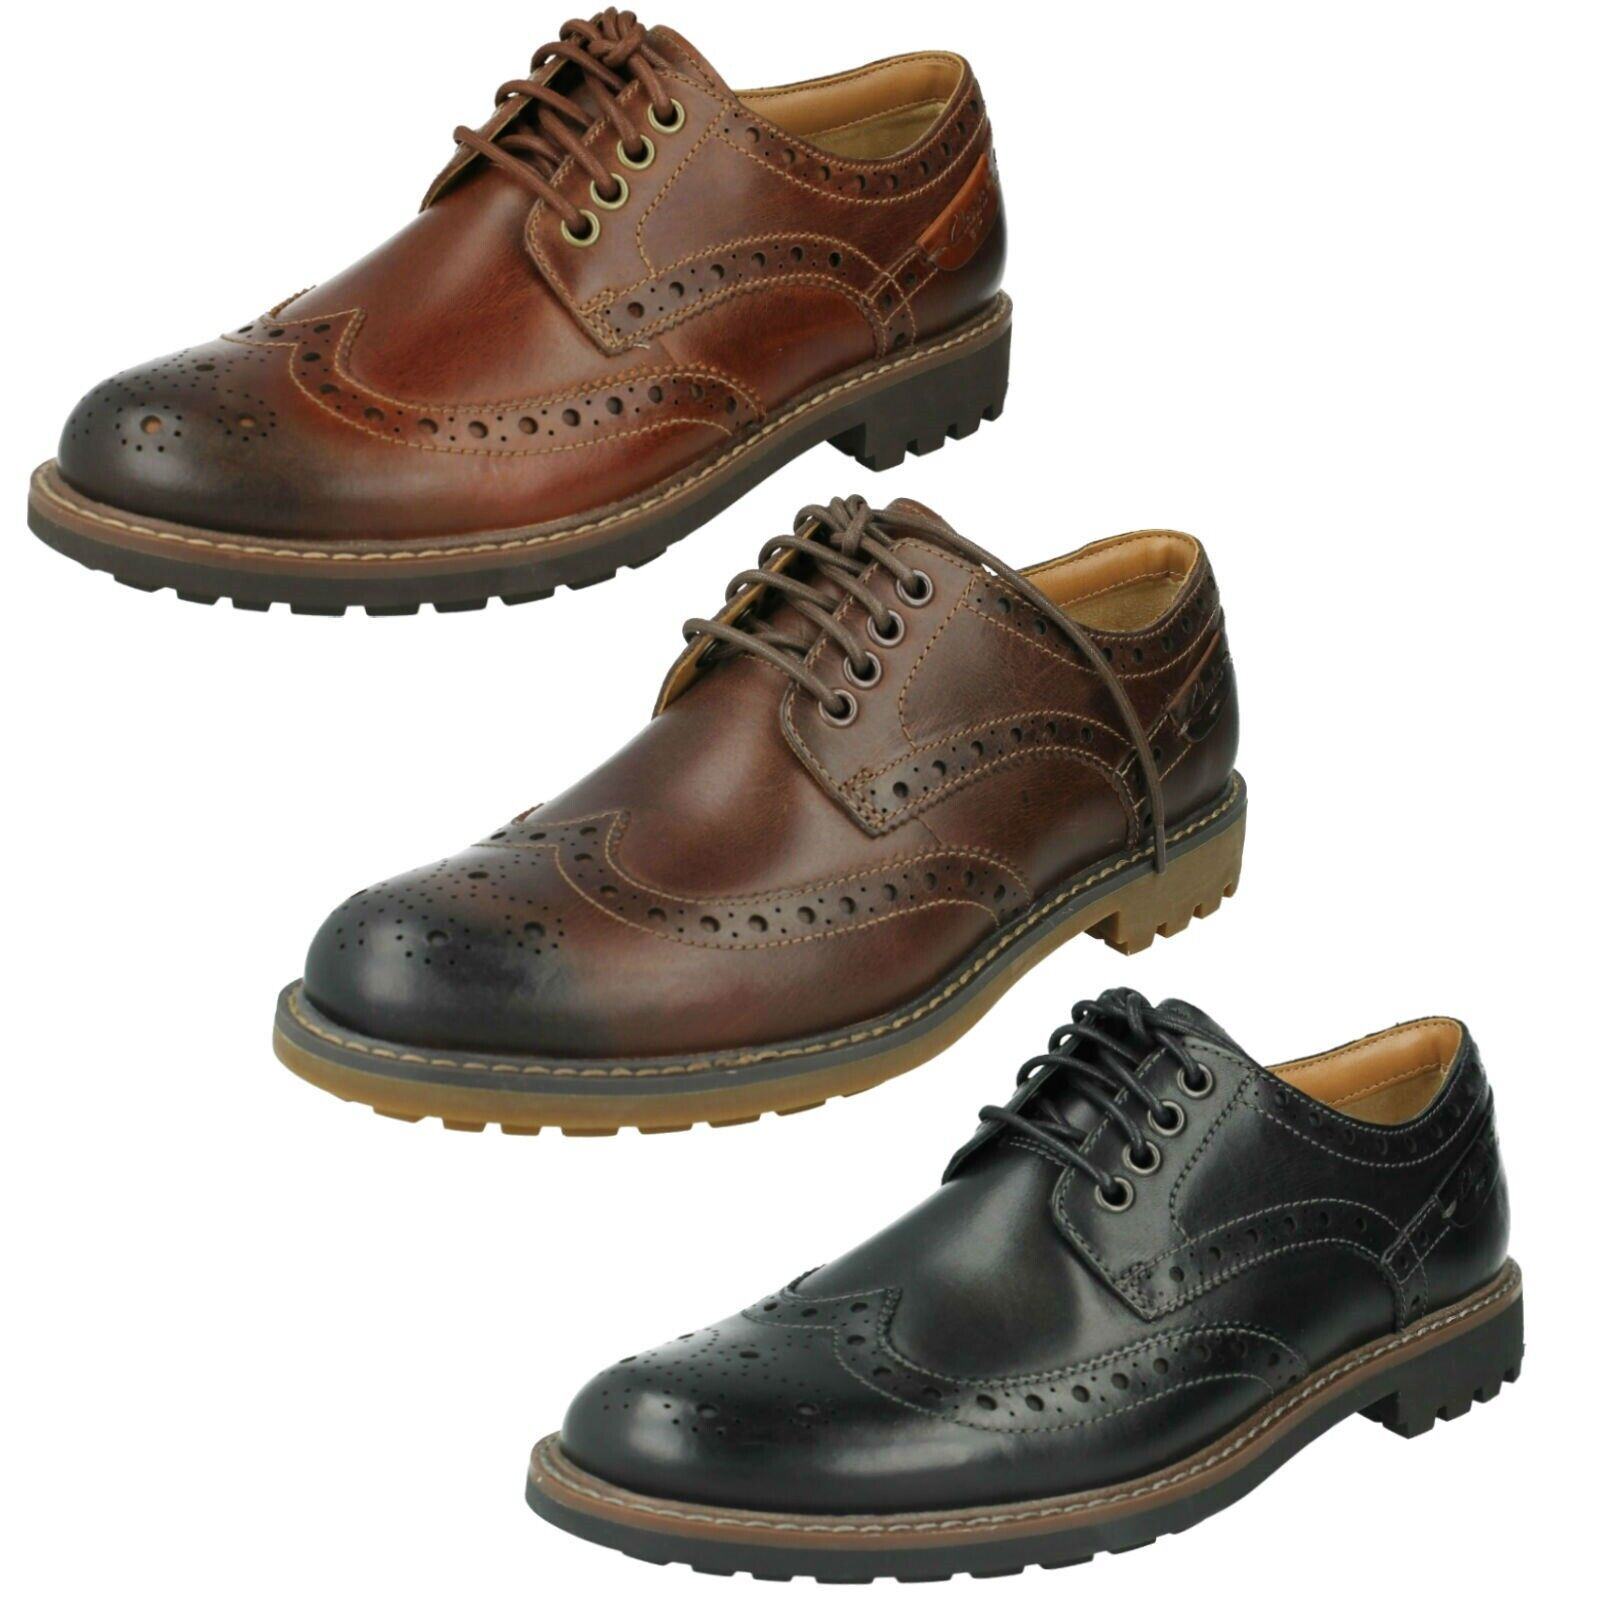 Mens Clarks Leather Dress Lace up Casual Brogue Formal Shoes